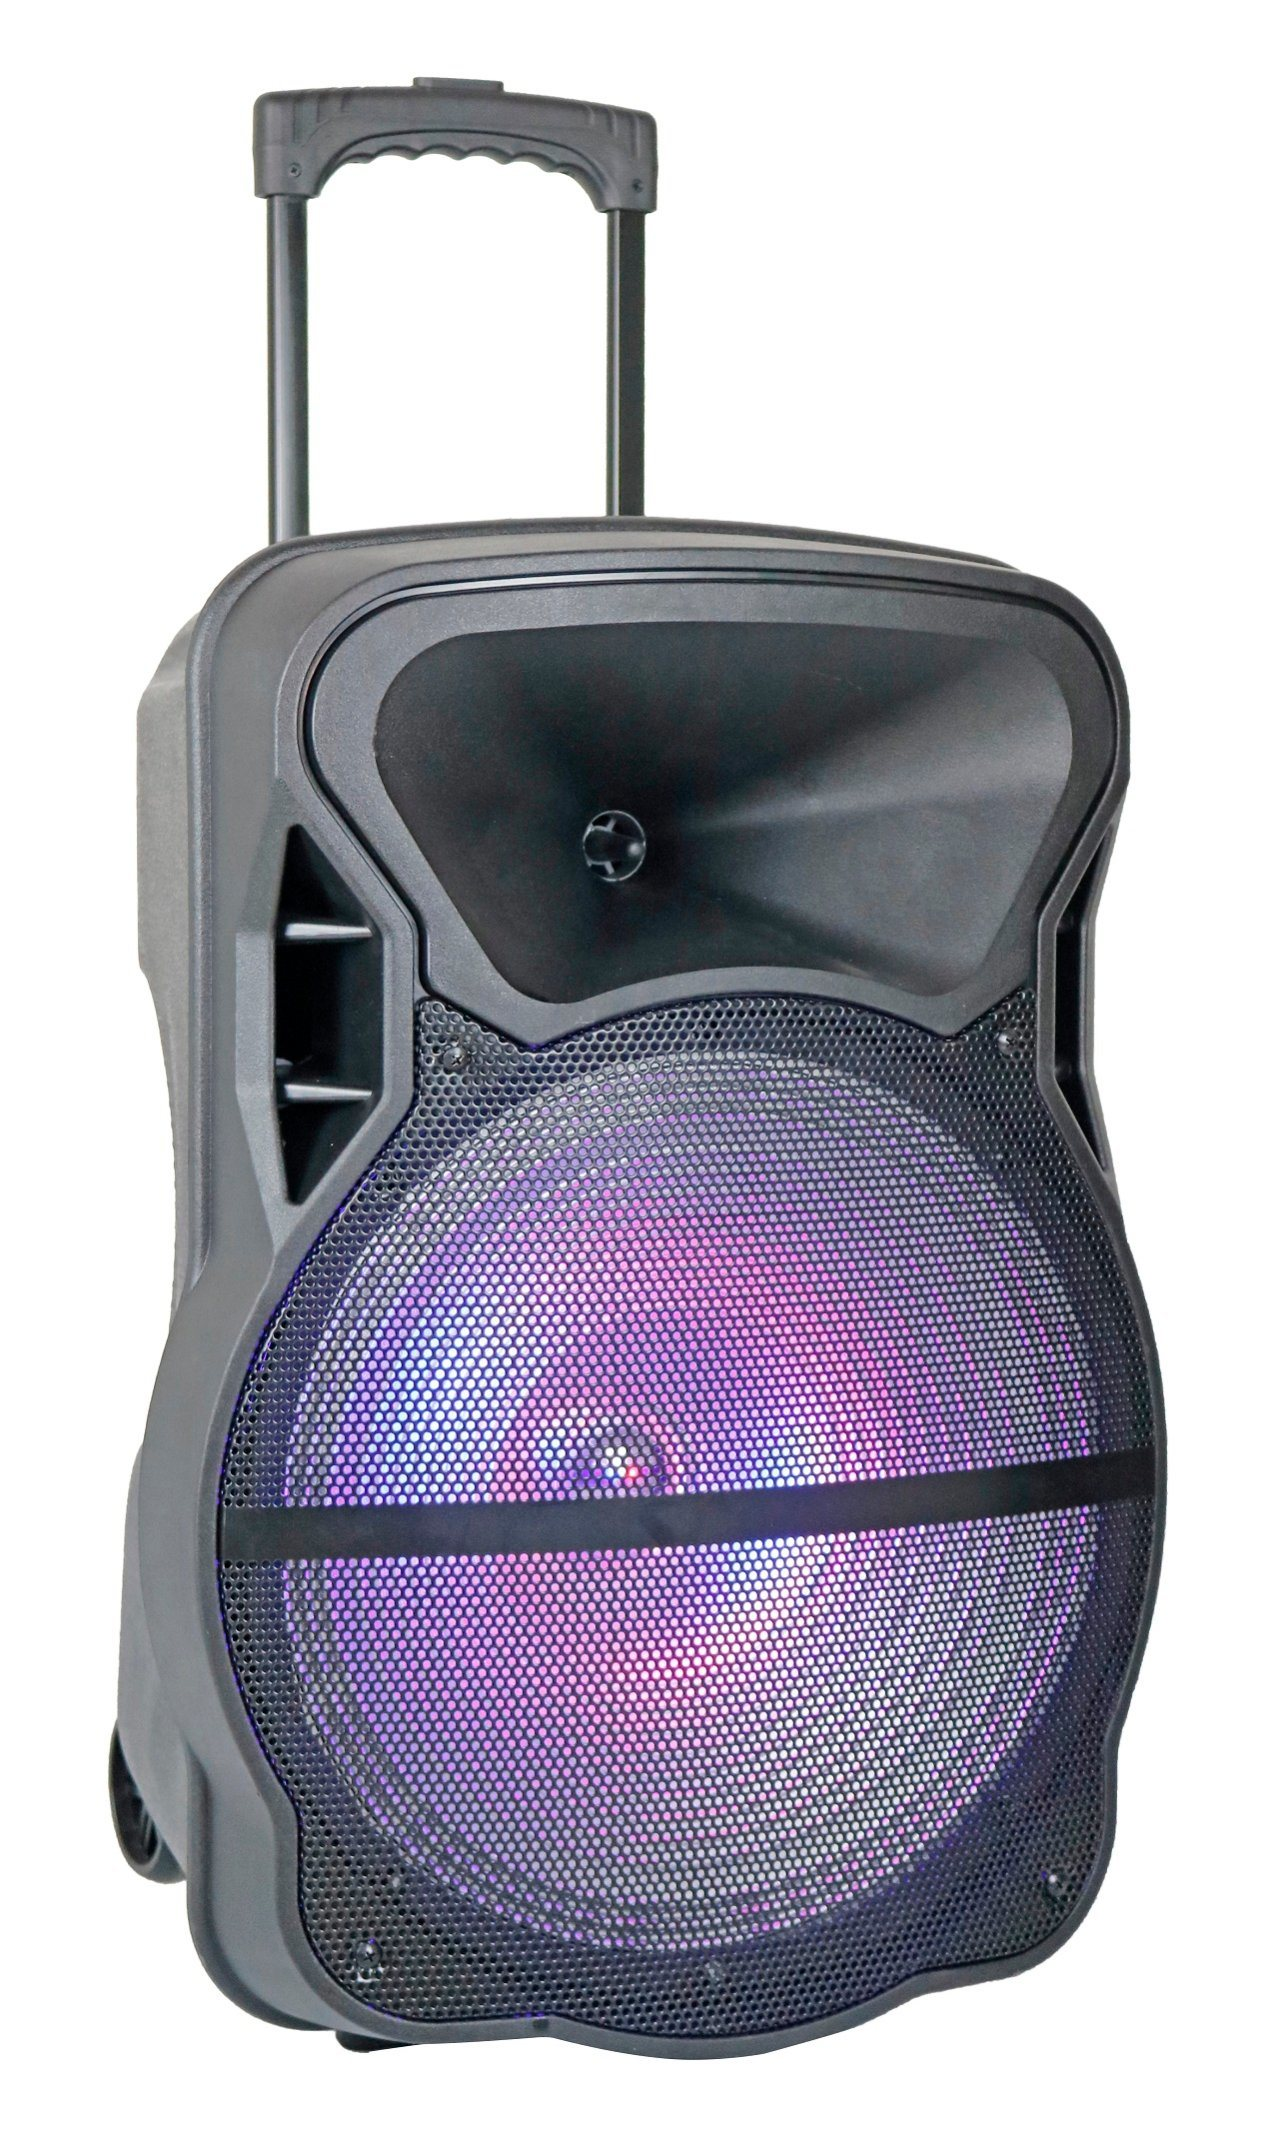 15 Inch Wireless Sound Systems Portable Rechargeable Trolley Speaker Plastic Active Speaker Box Cx-15D